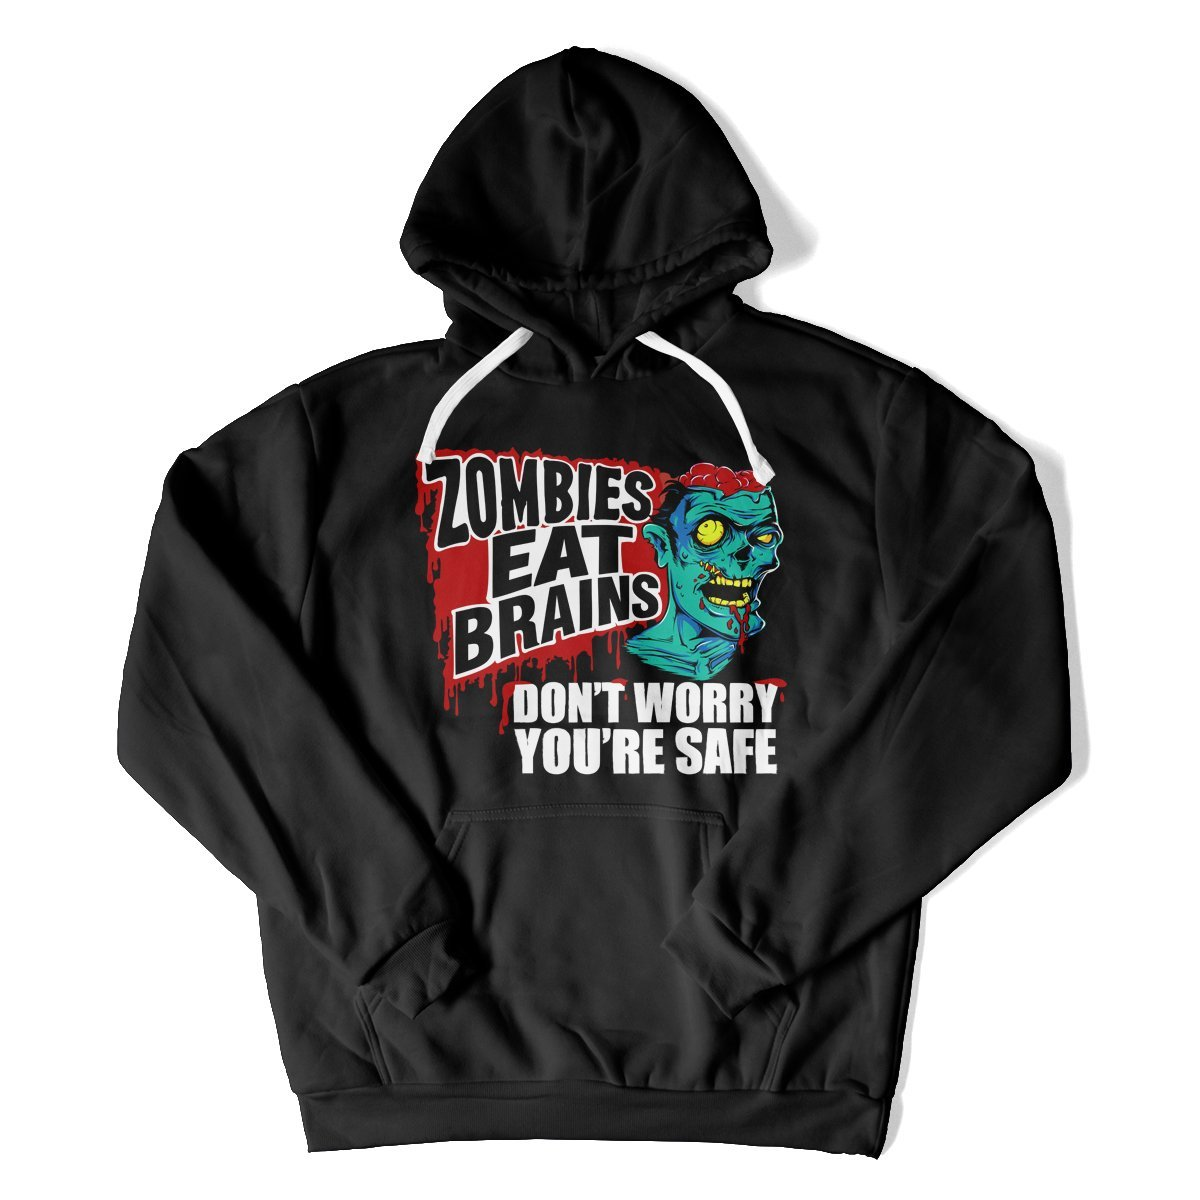 d030da9ee Zombies Eat Brains. Don't Worry, You're Safe. - Zombie T-Shirts ...